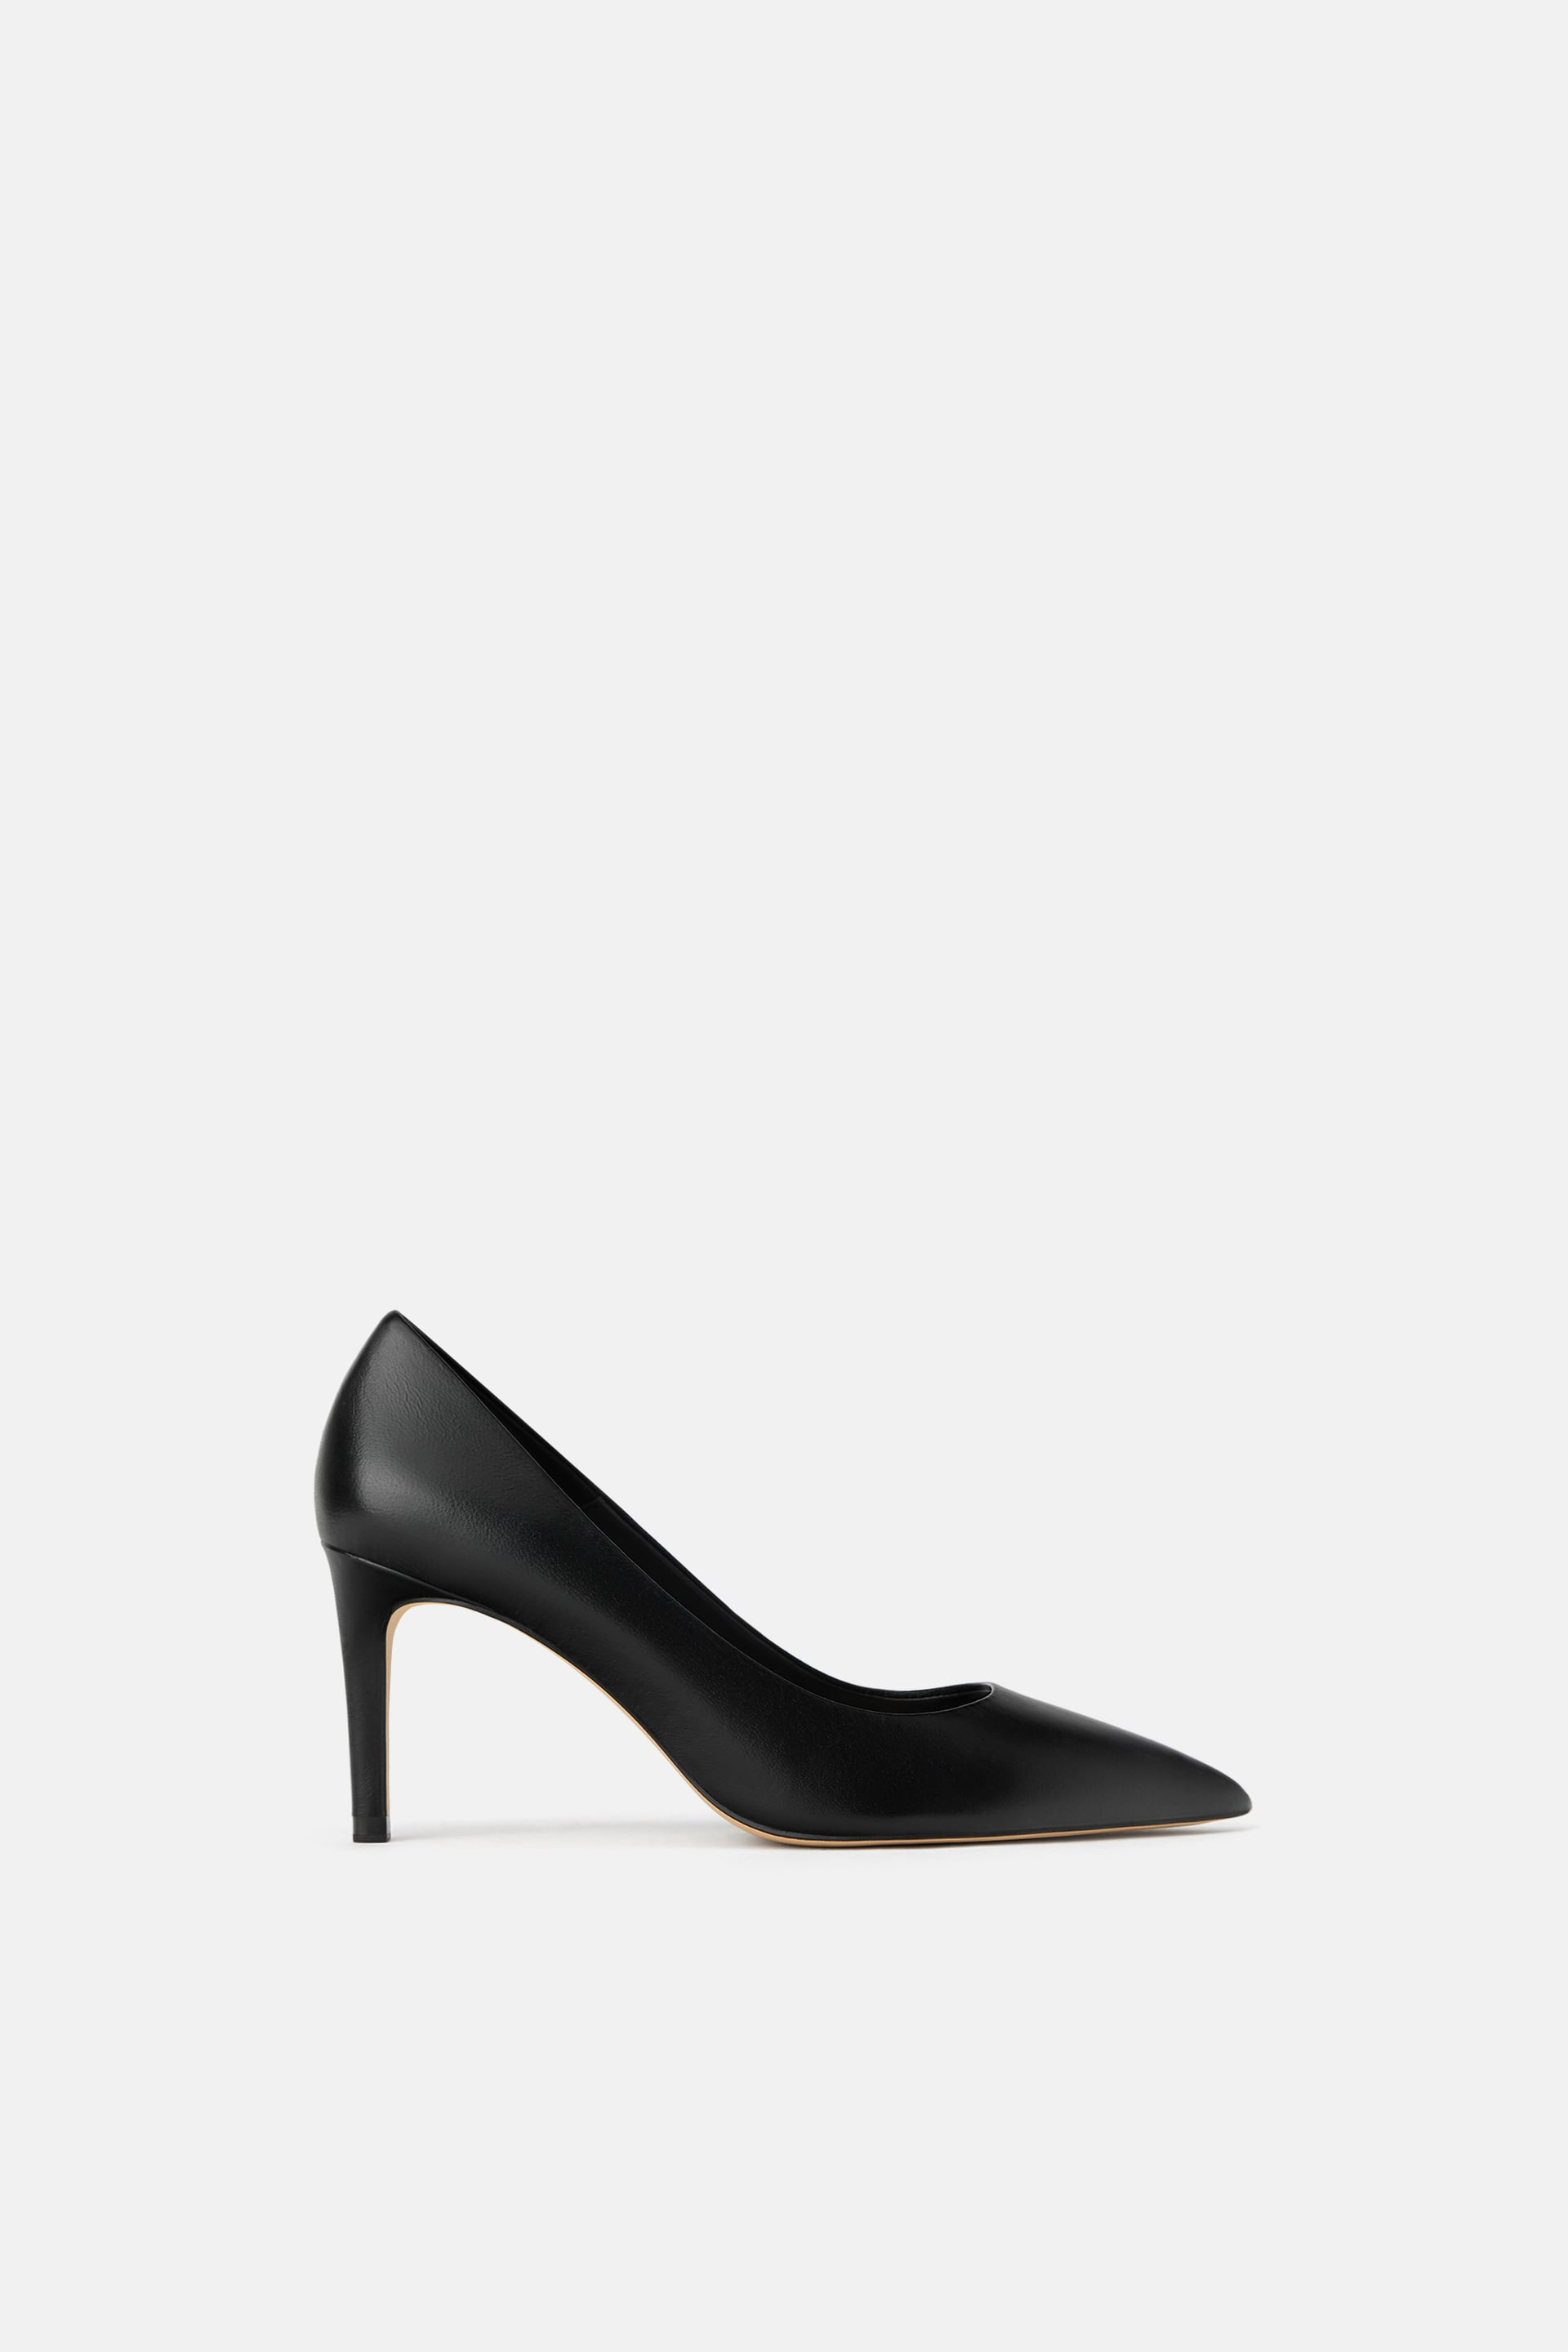 Zara Leather Heels.jpg